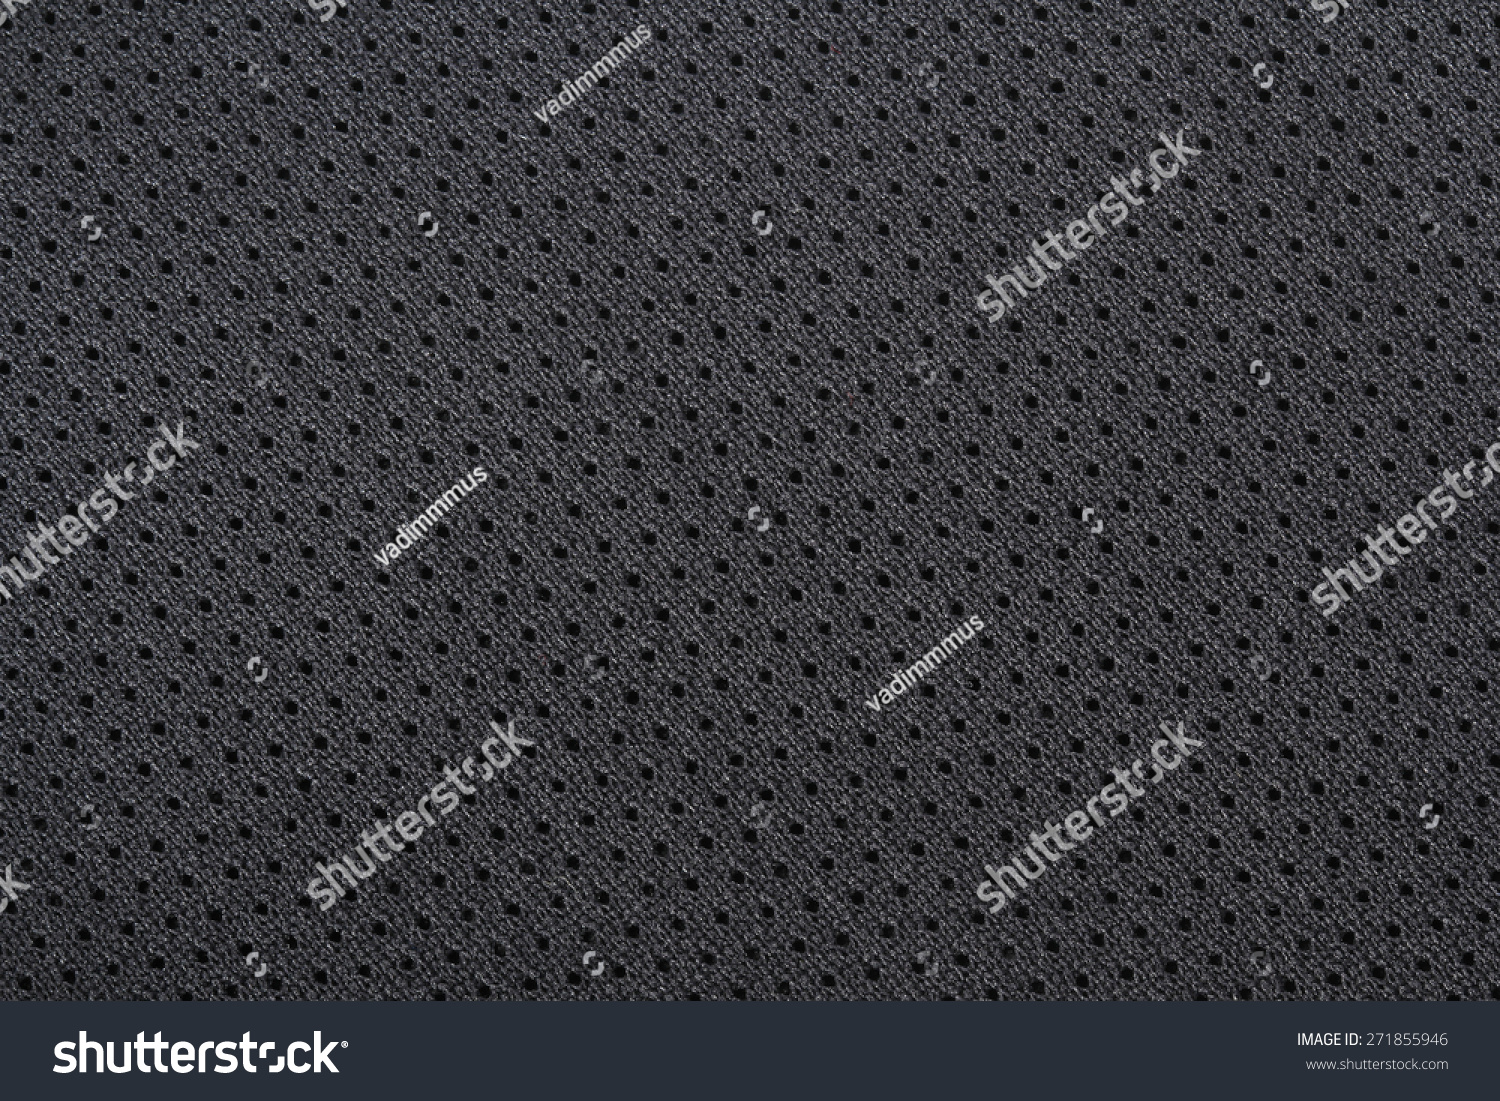 Sport Wallpaper Texture: Cloth Texture. Sport Background Stock Photo 271855946